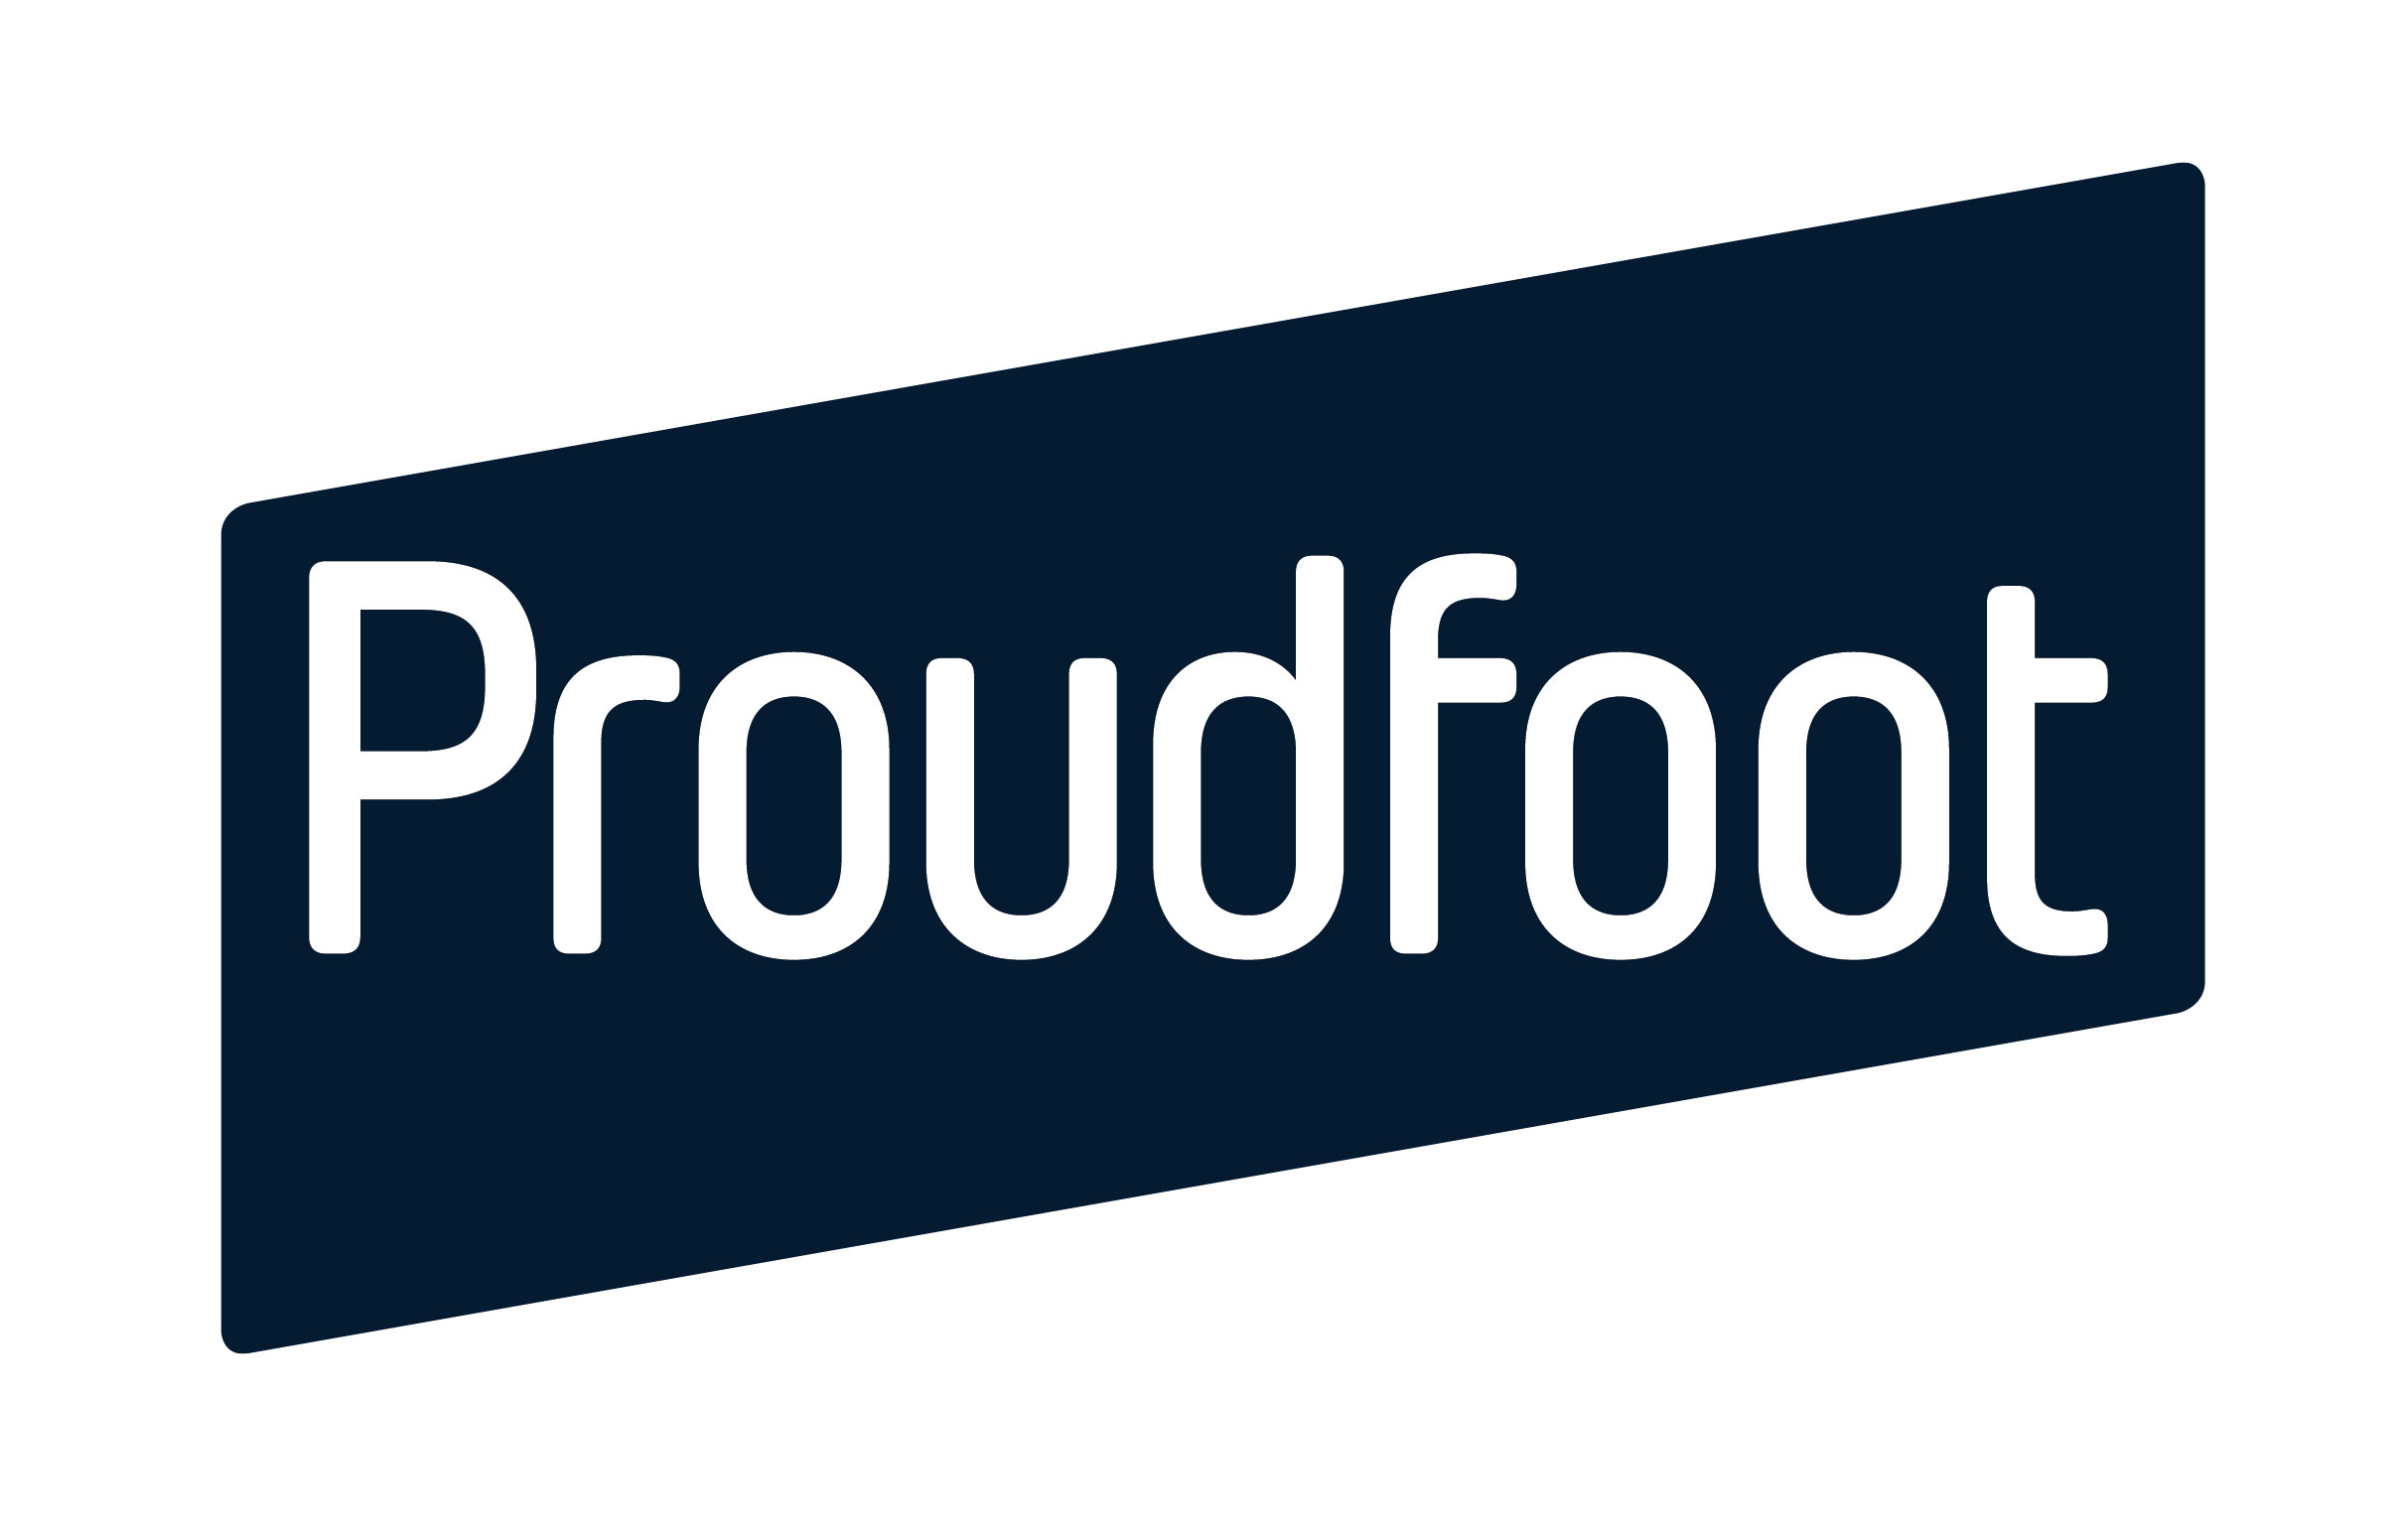 Proudfoot logo blue